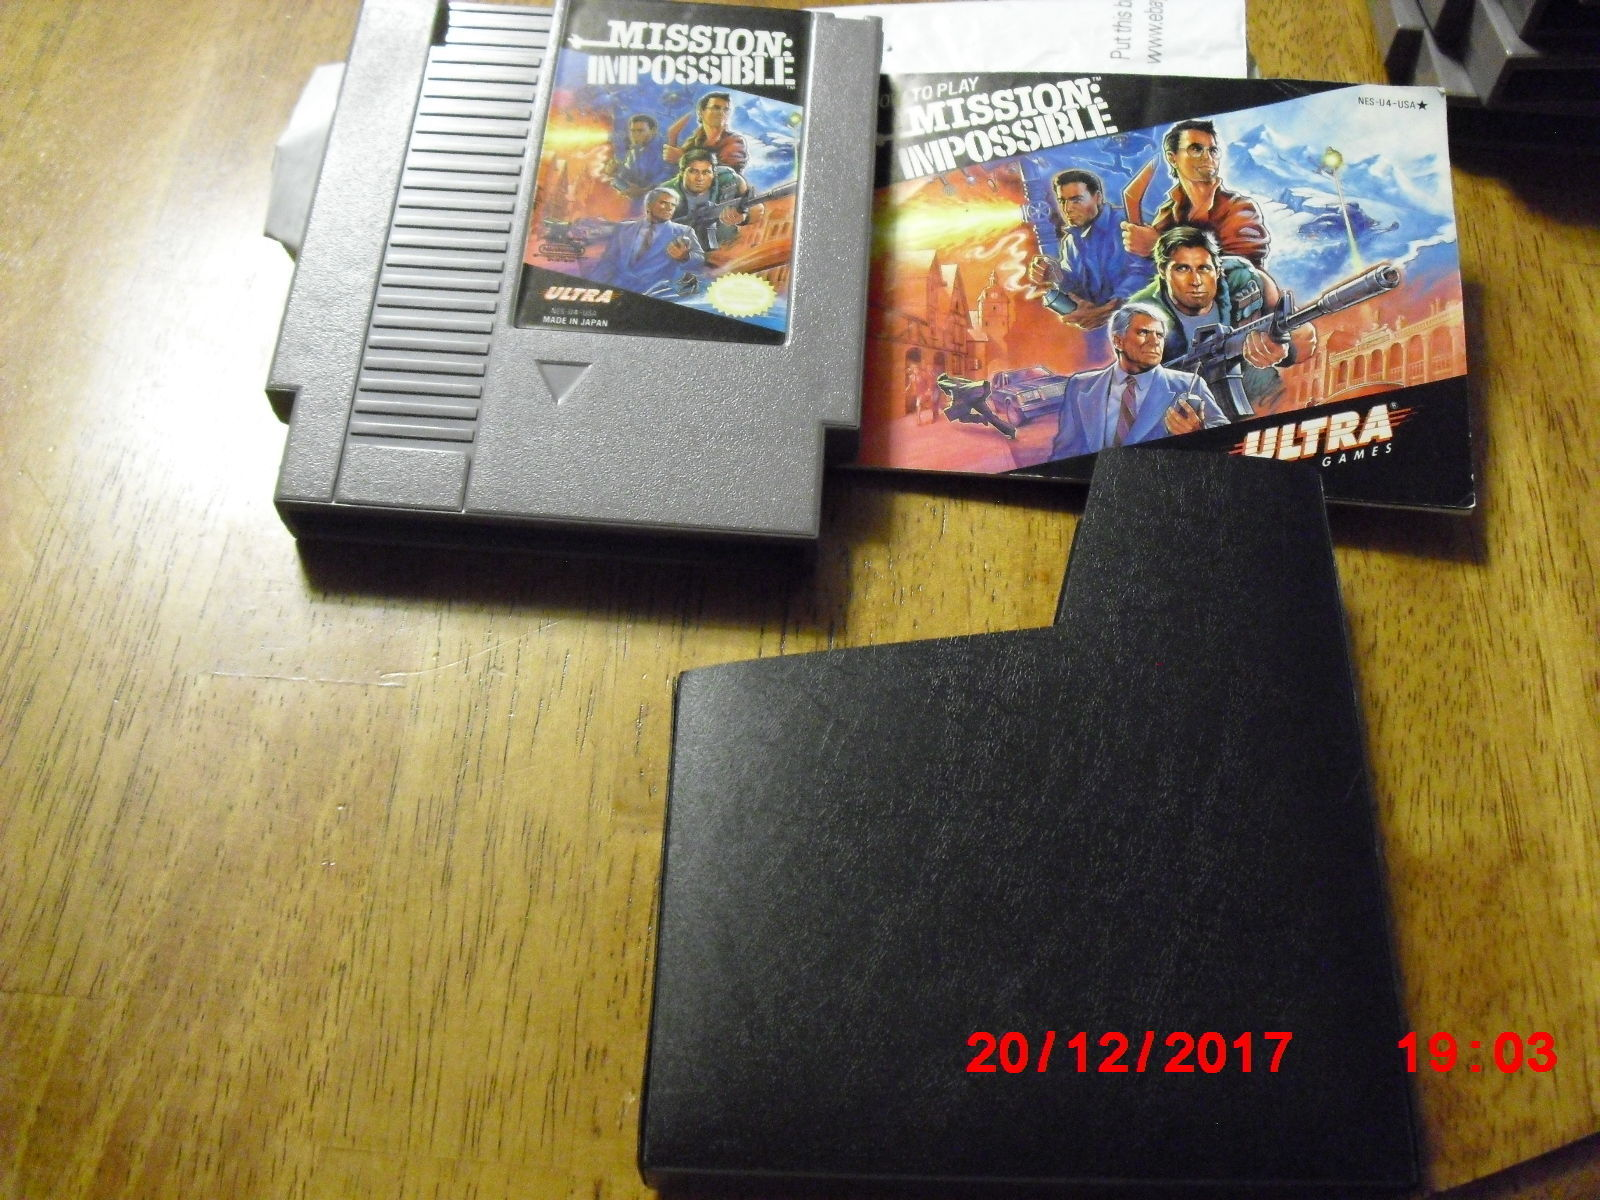 Mission: Impossible (Nintendo Entertainment System NES, 1990)